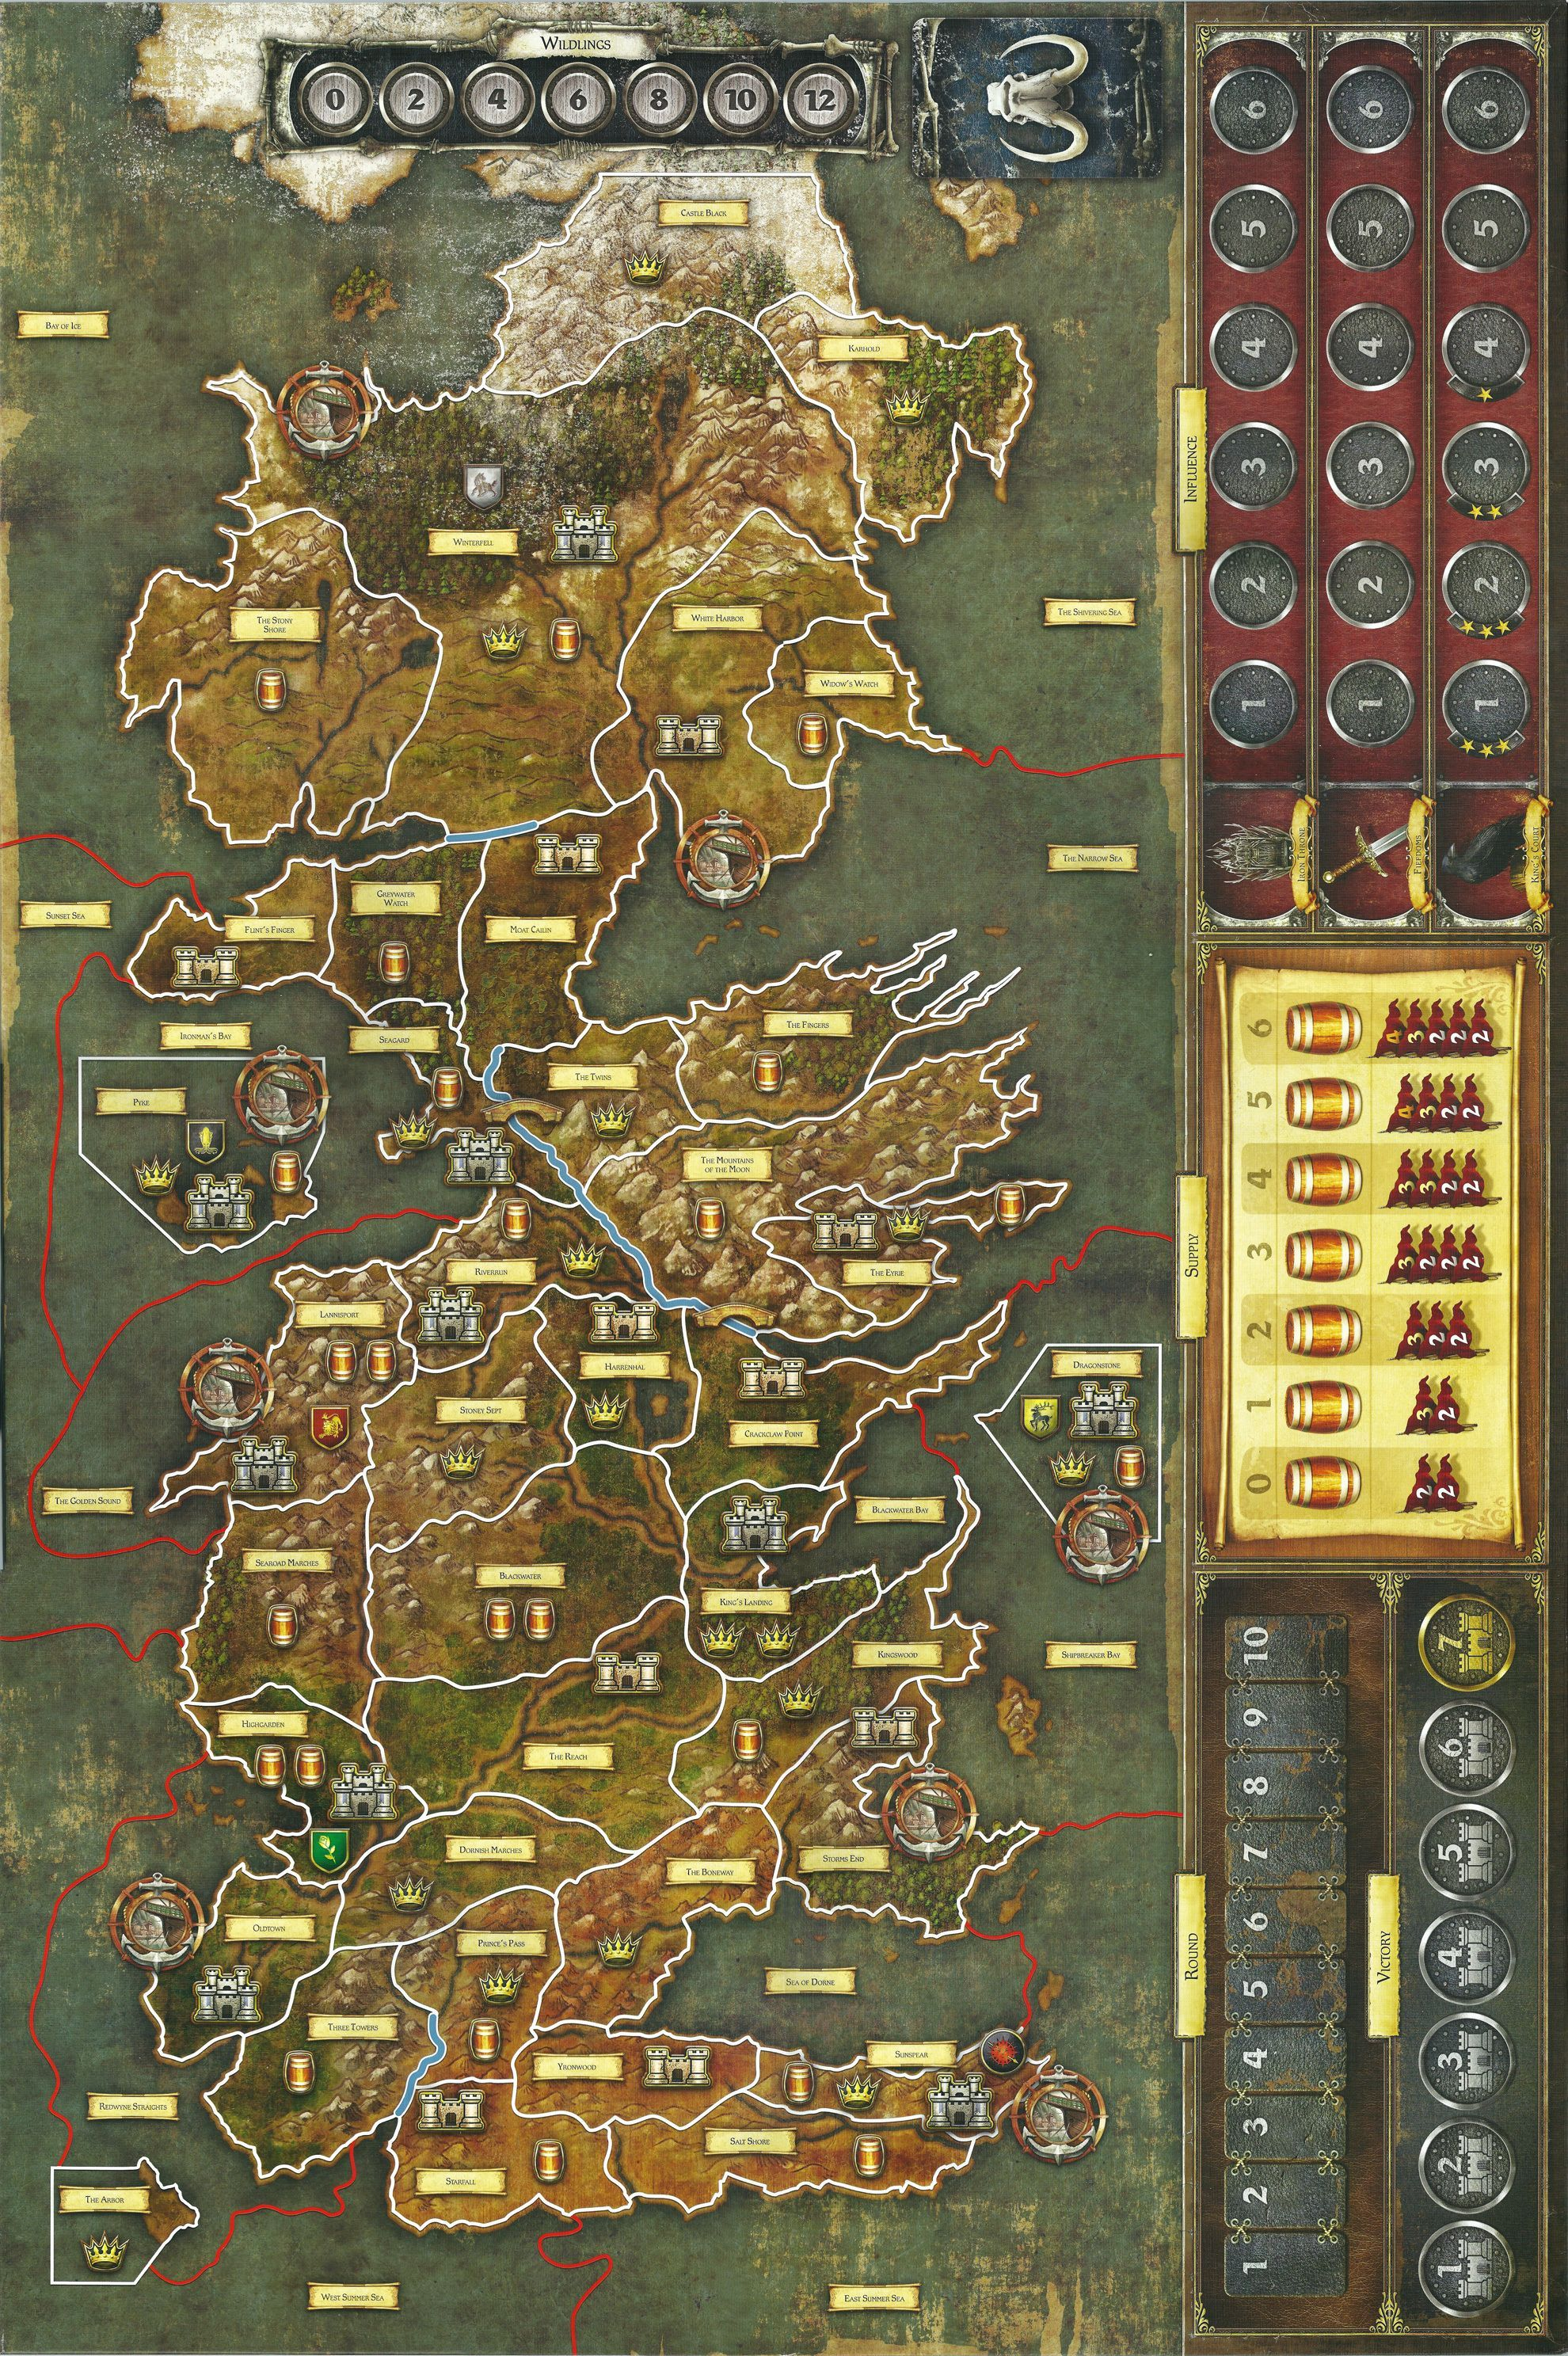 A Game of Thrones: The Board Game (Second Edition) | Image ... Game Of Thrones Map Large on game of thrones maps hbo, united states map large, game of thrones castle names, game of thrones westeros, game of thrones chart, game of thrones dragon symbol, game of thrones narrow sea, earthsea map large, game of thrones house wallpapers, game of thrones house symbols, game of thrones clan names, game of thrones you rock,